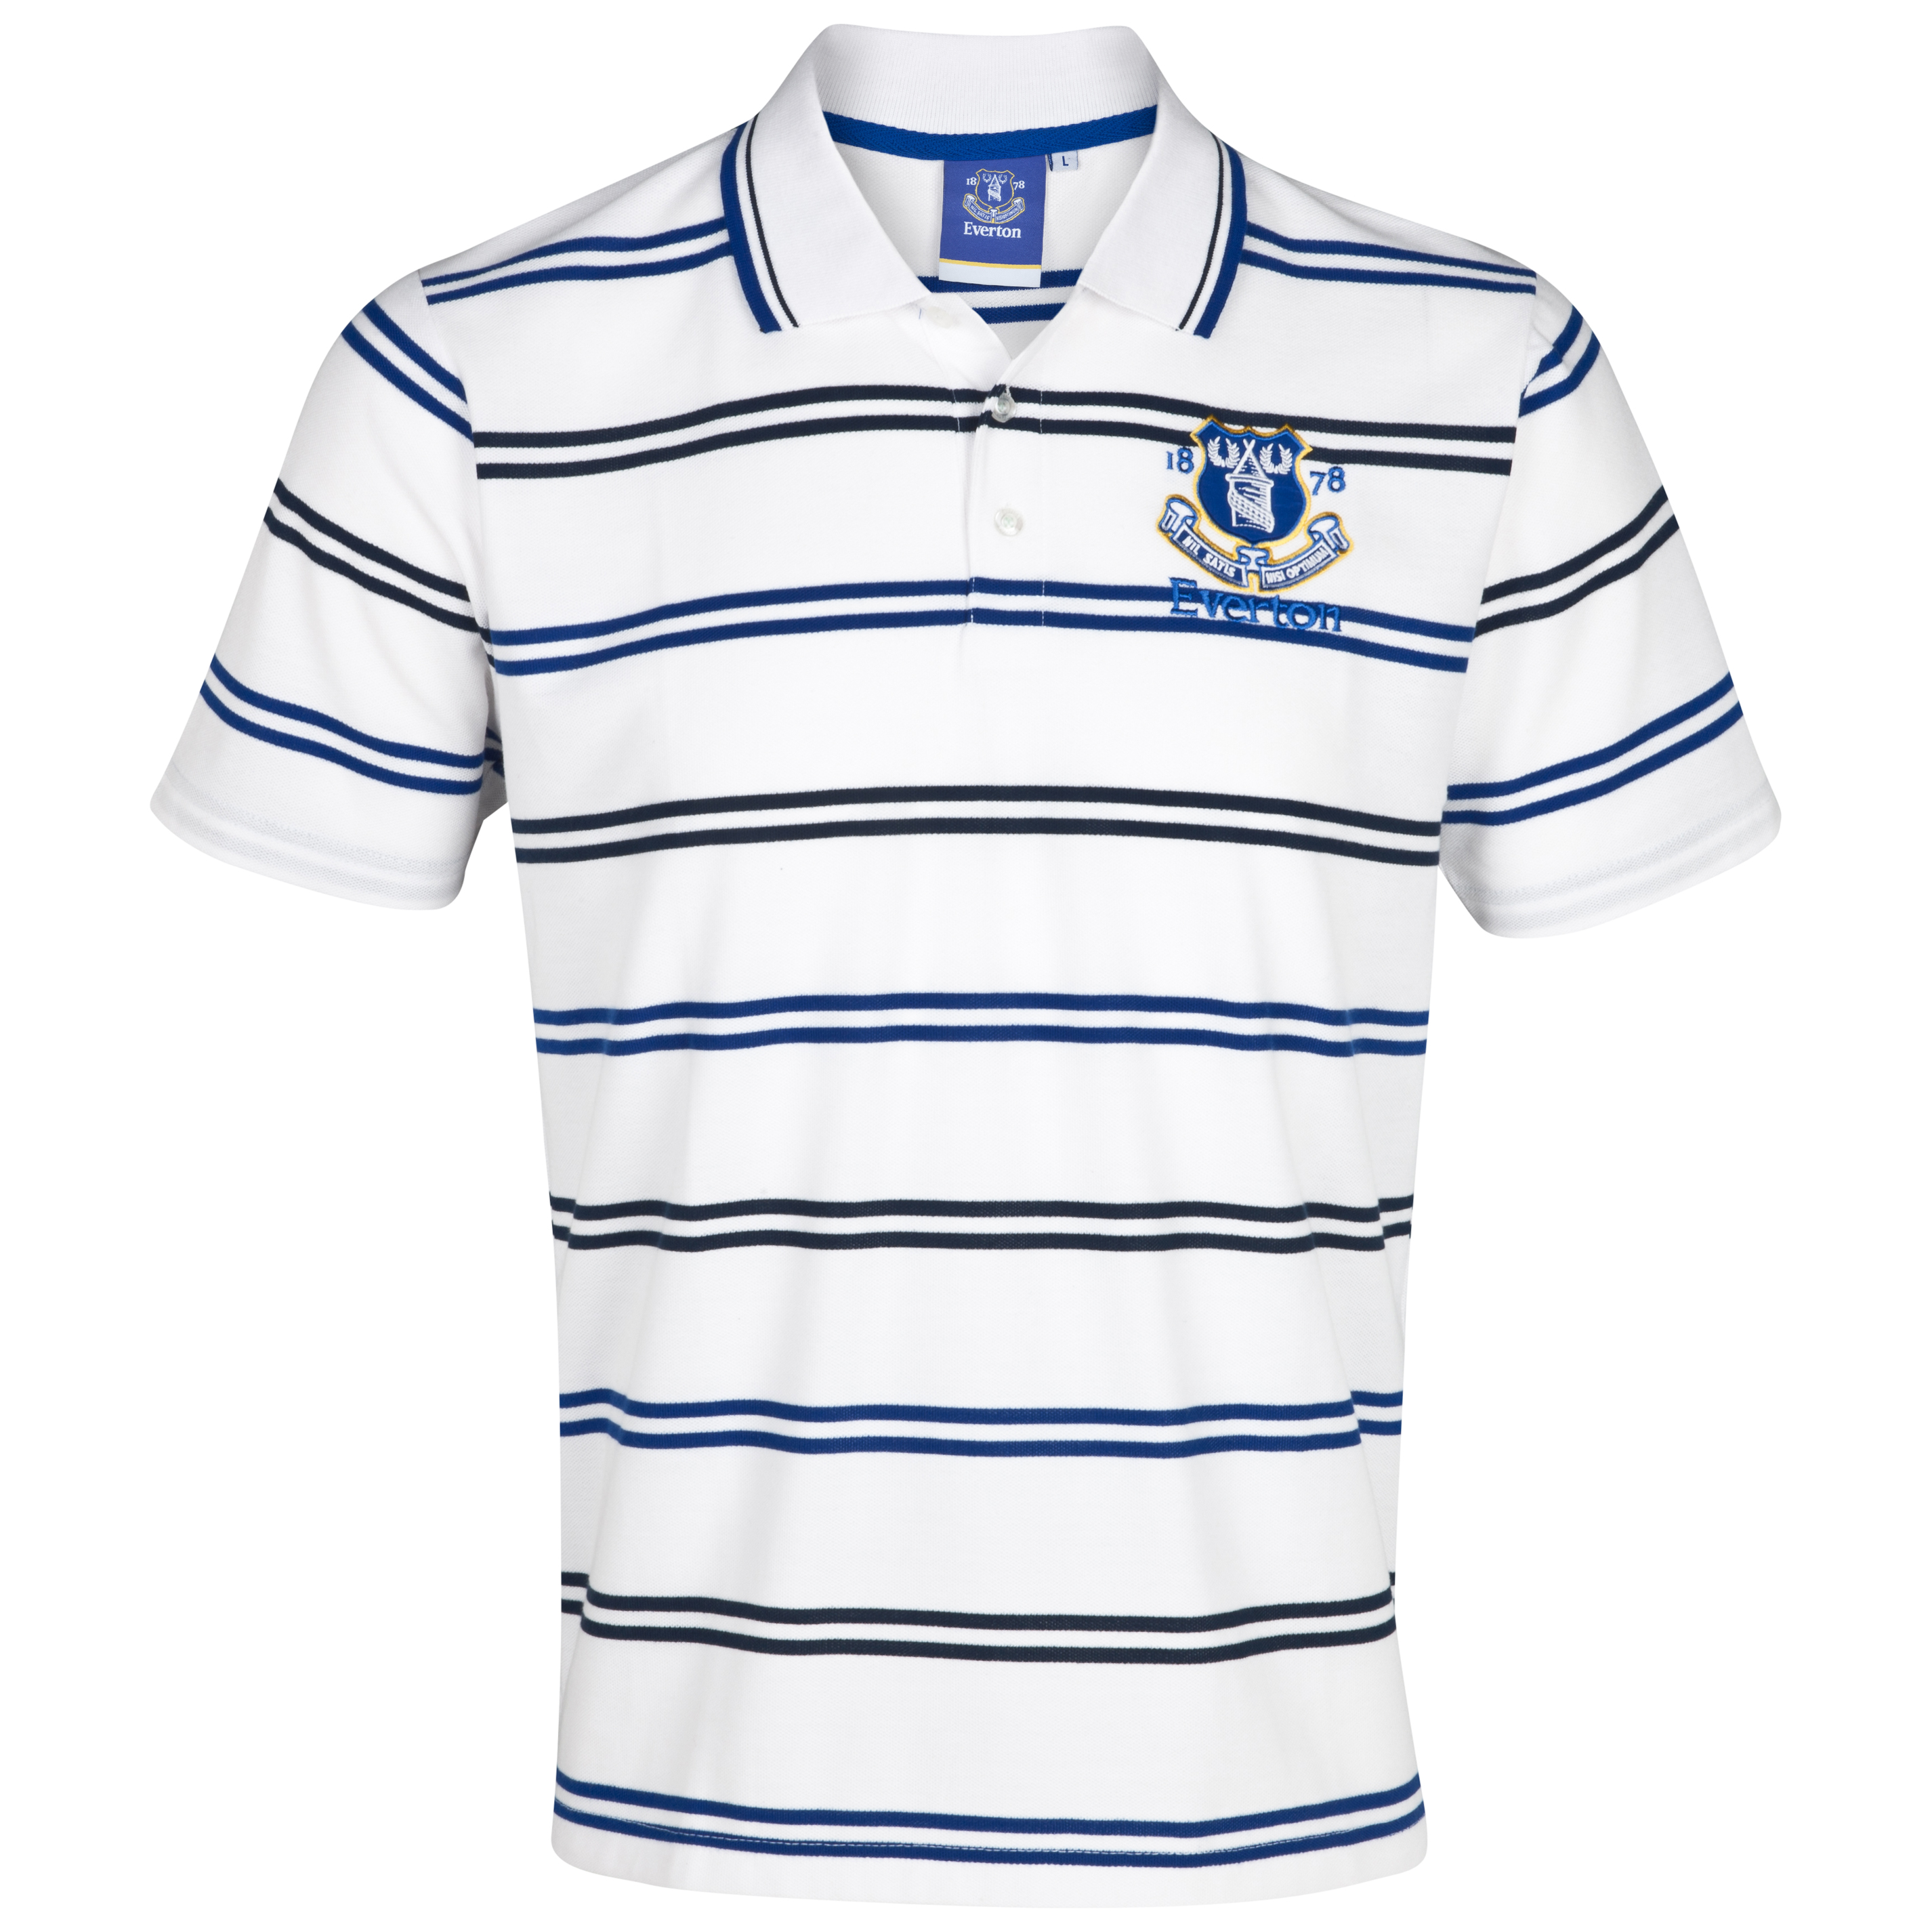 Everton Essentials Lineup Polo Top - White/Royal/Navy